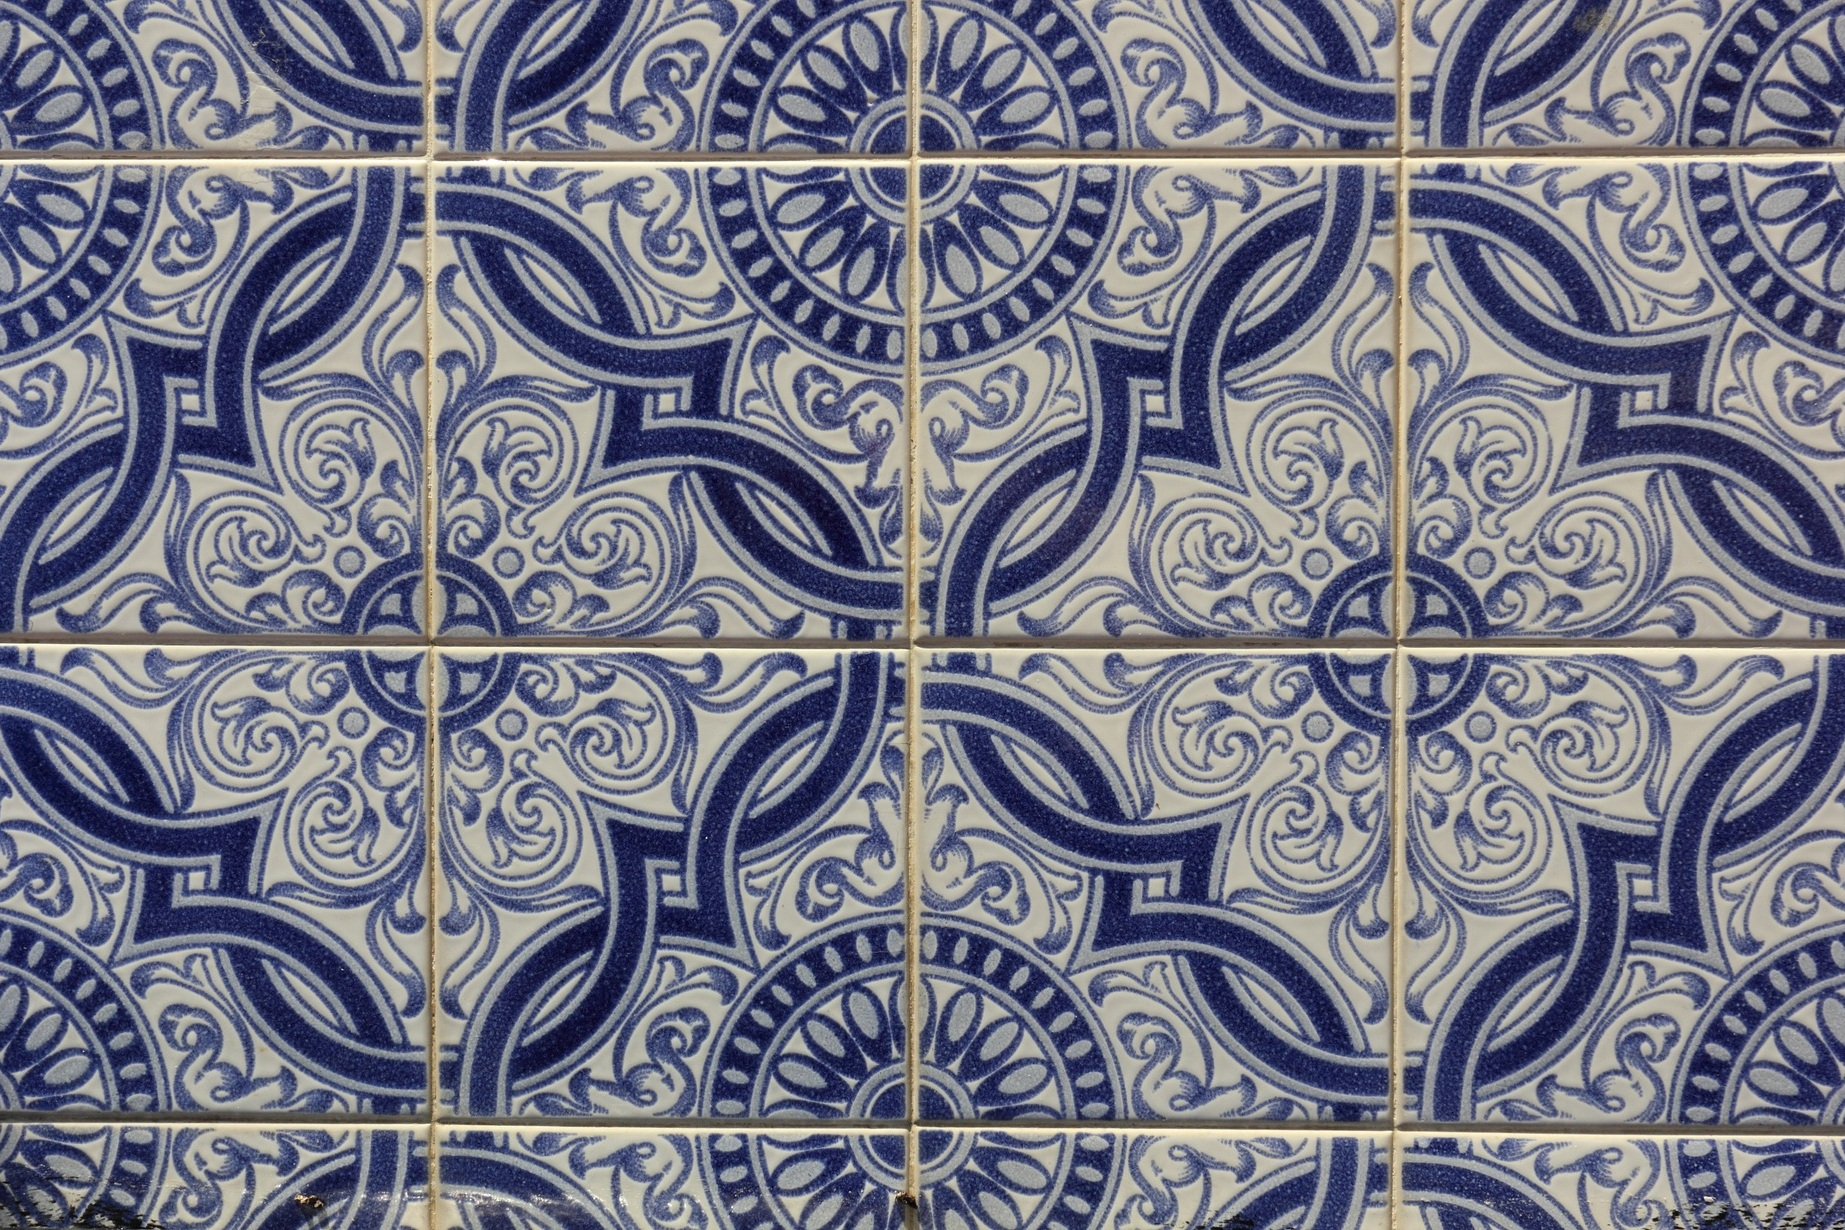 Tiles & Tales - An azulejo workshop & shared tour